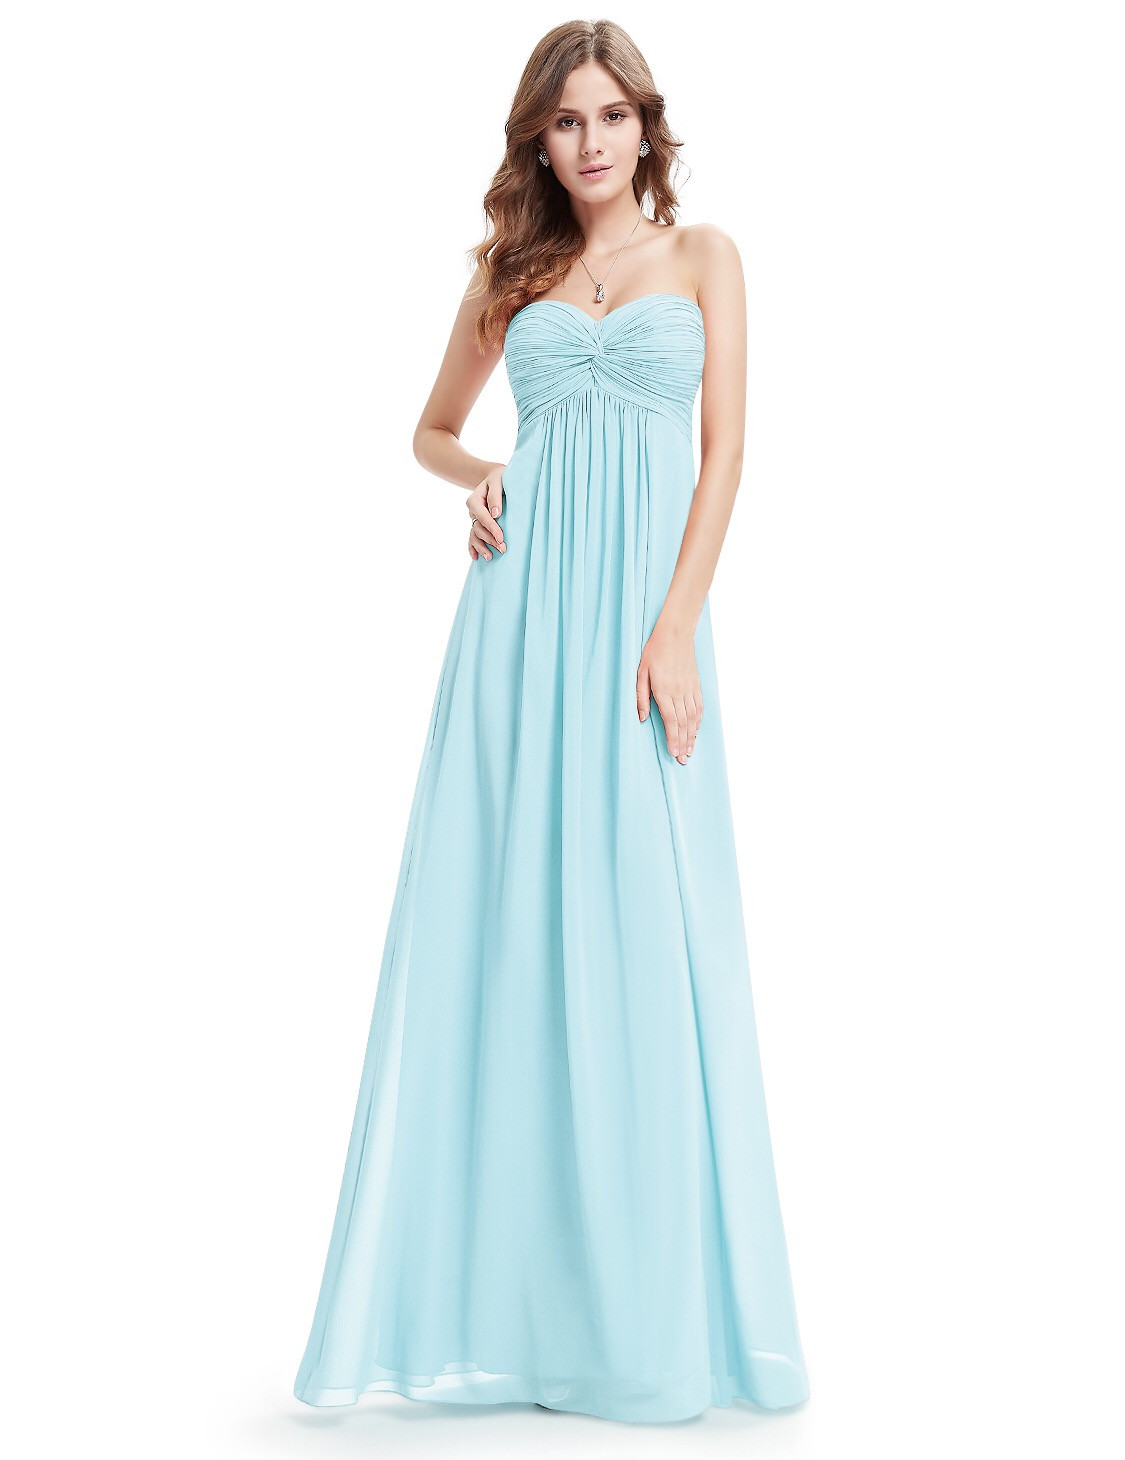 Sweetheart Strapless Light Blue Bridesmaid Dress – Budget ...